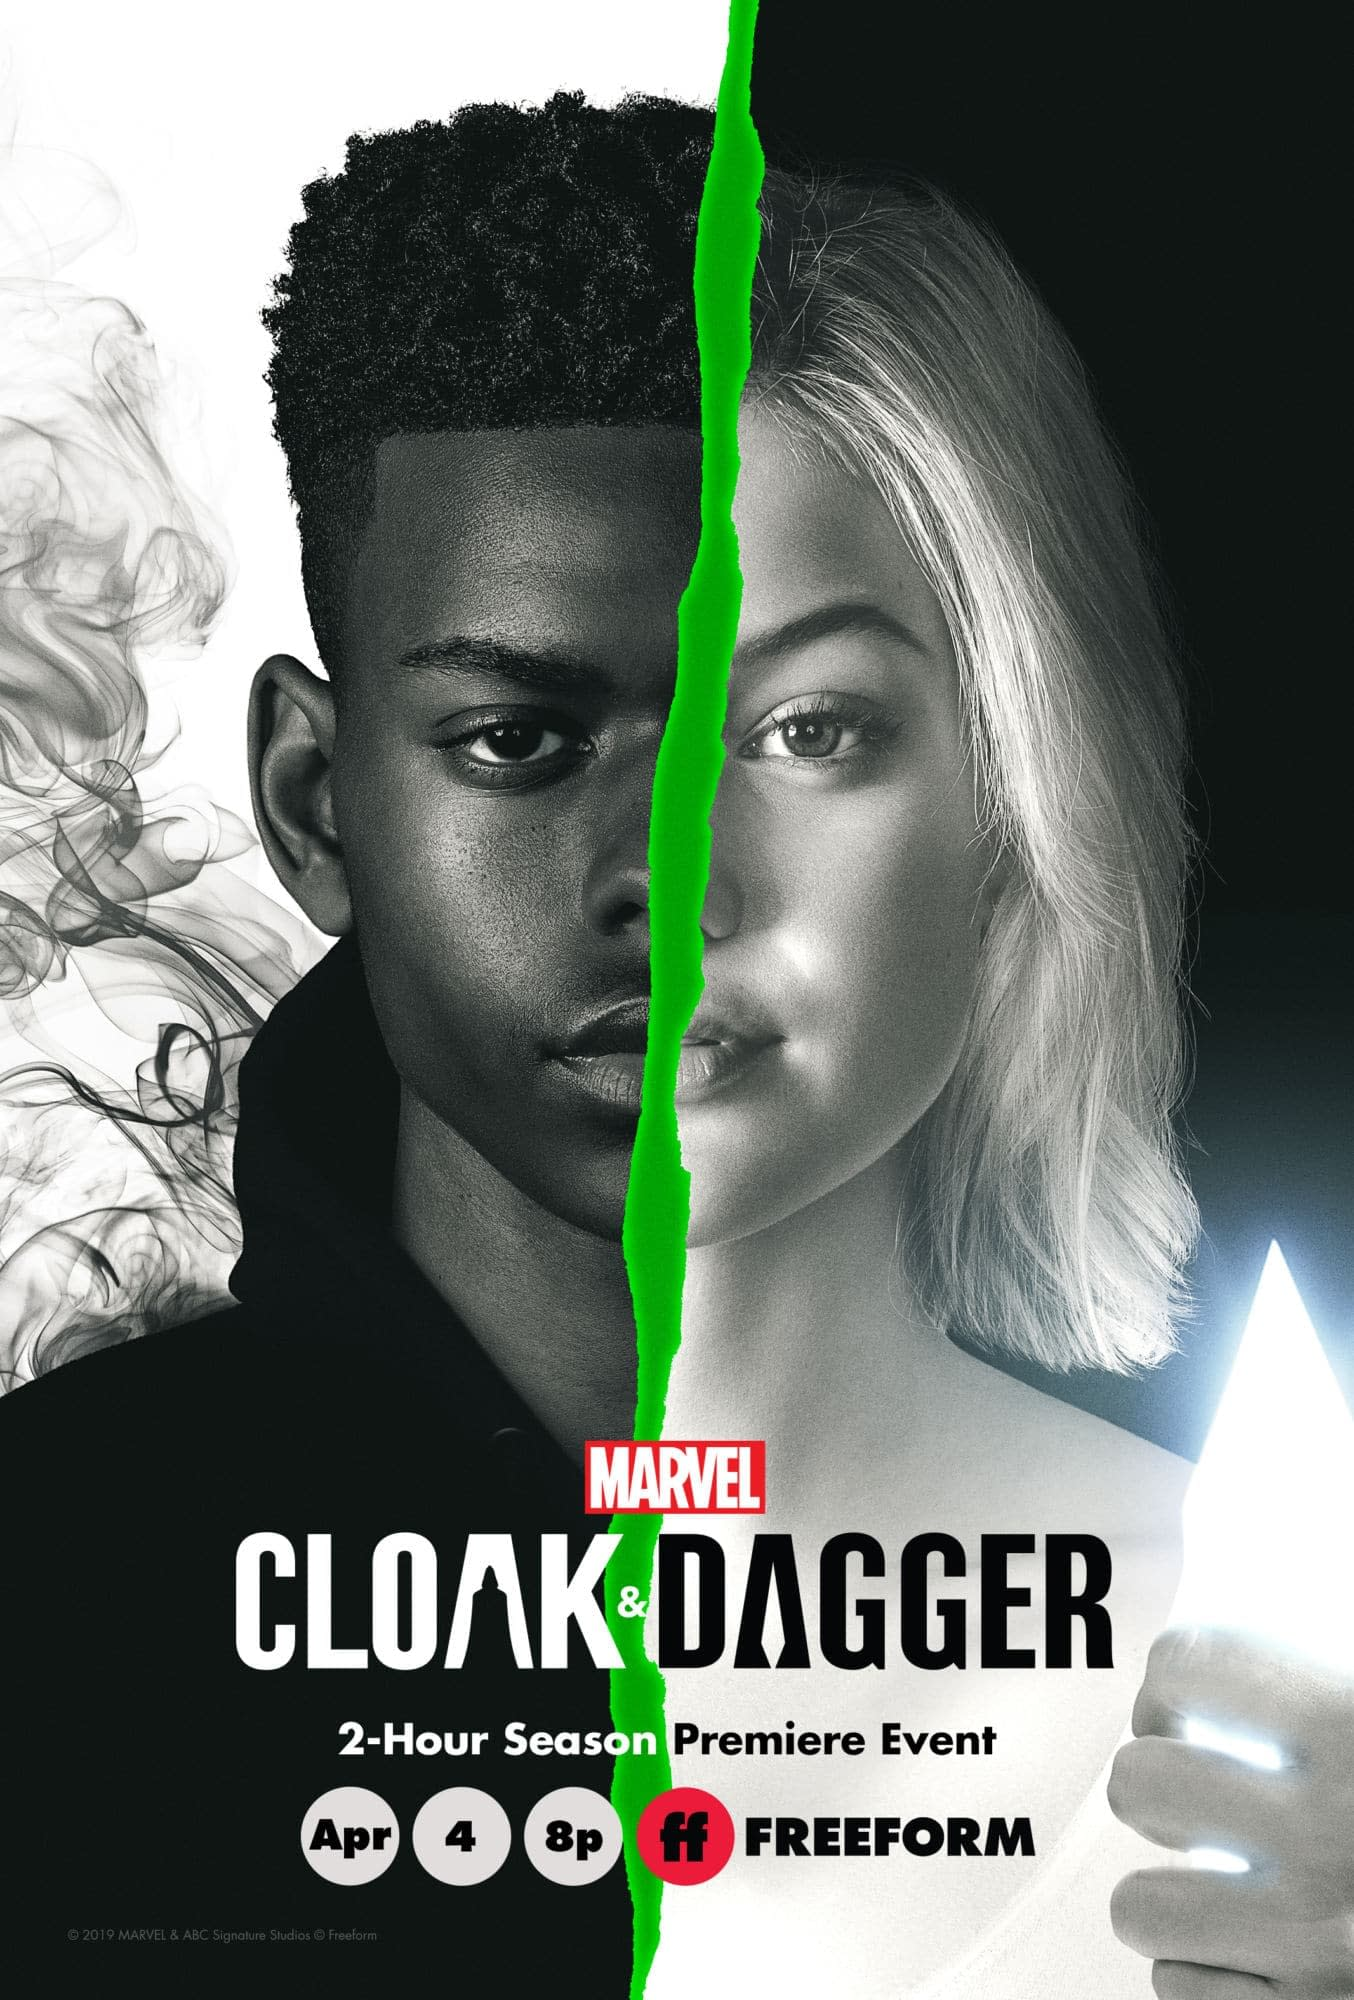 'Marvel's Cloak & Dagger' Season 2 Gets 2-Hour April Premiere; Poster Released